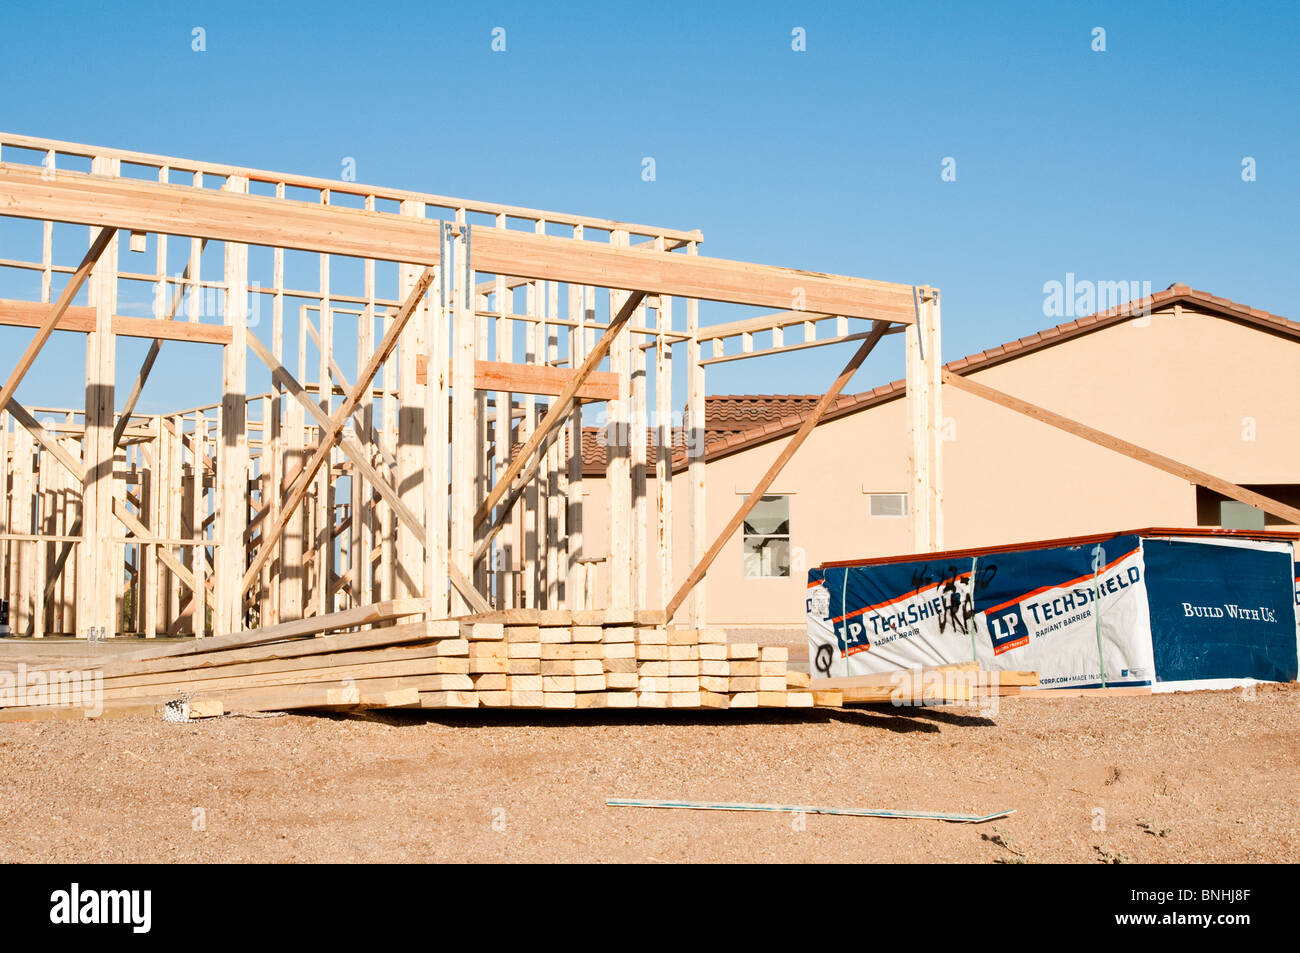 Building materials are stacked on the construction site for a new wood frame house beign built in Arizona. - Stock Image